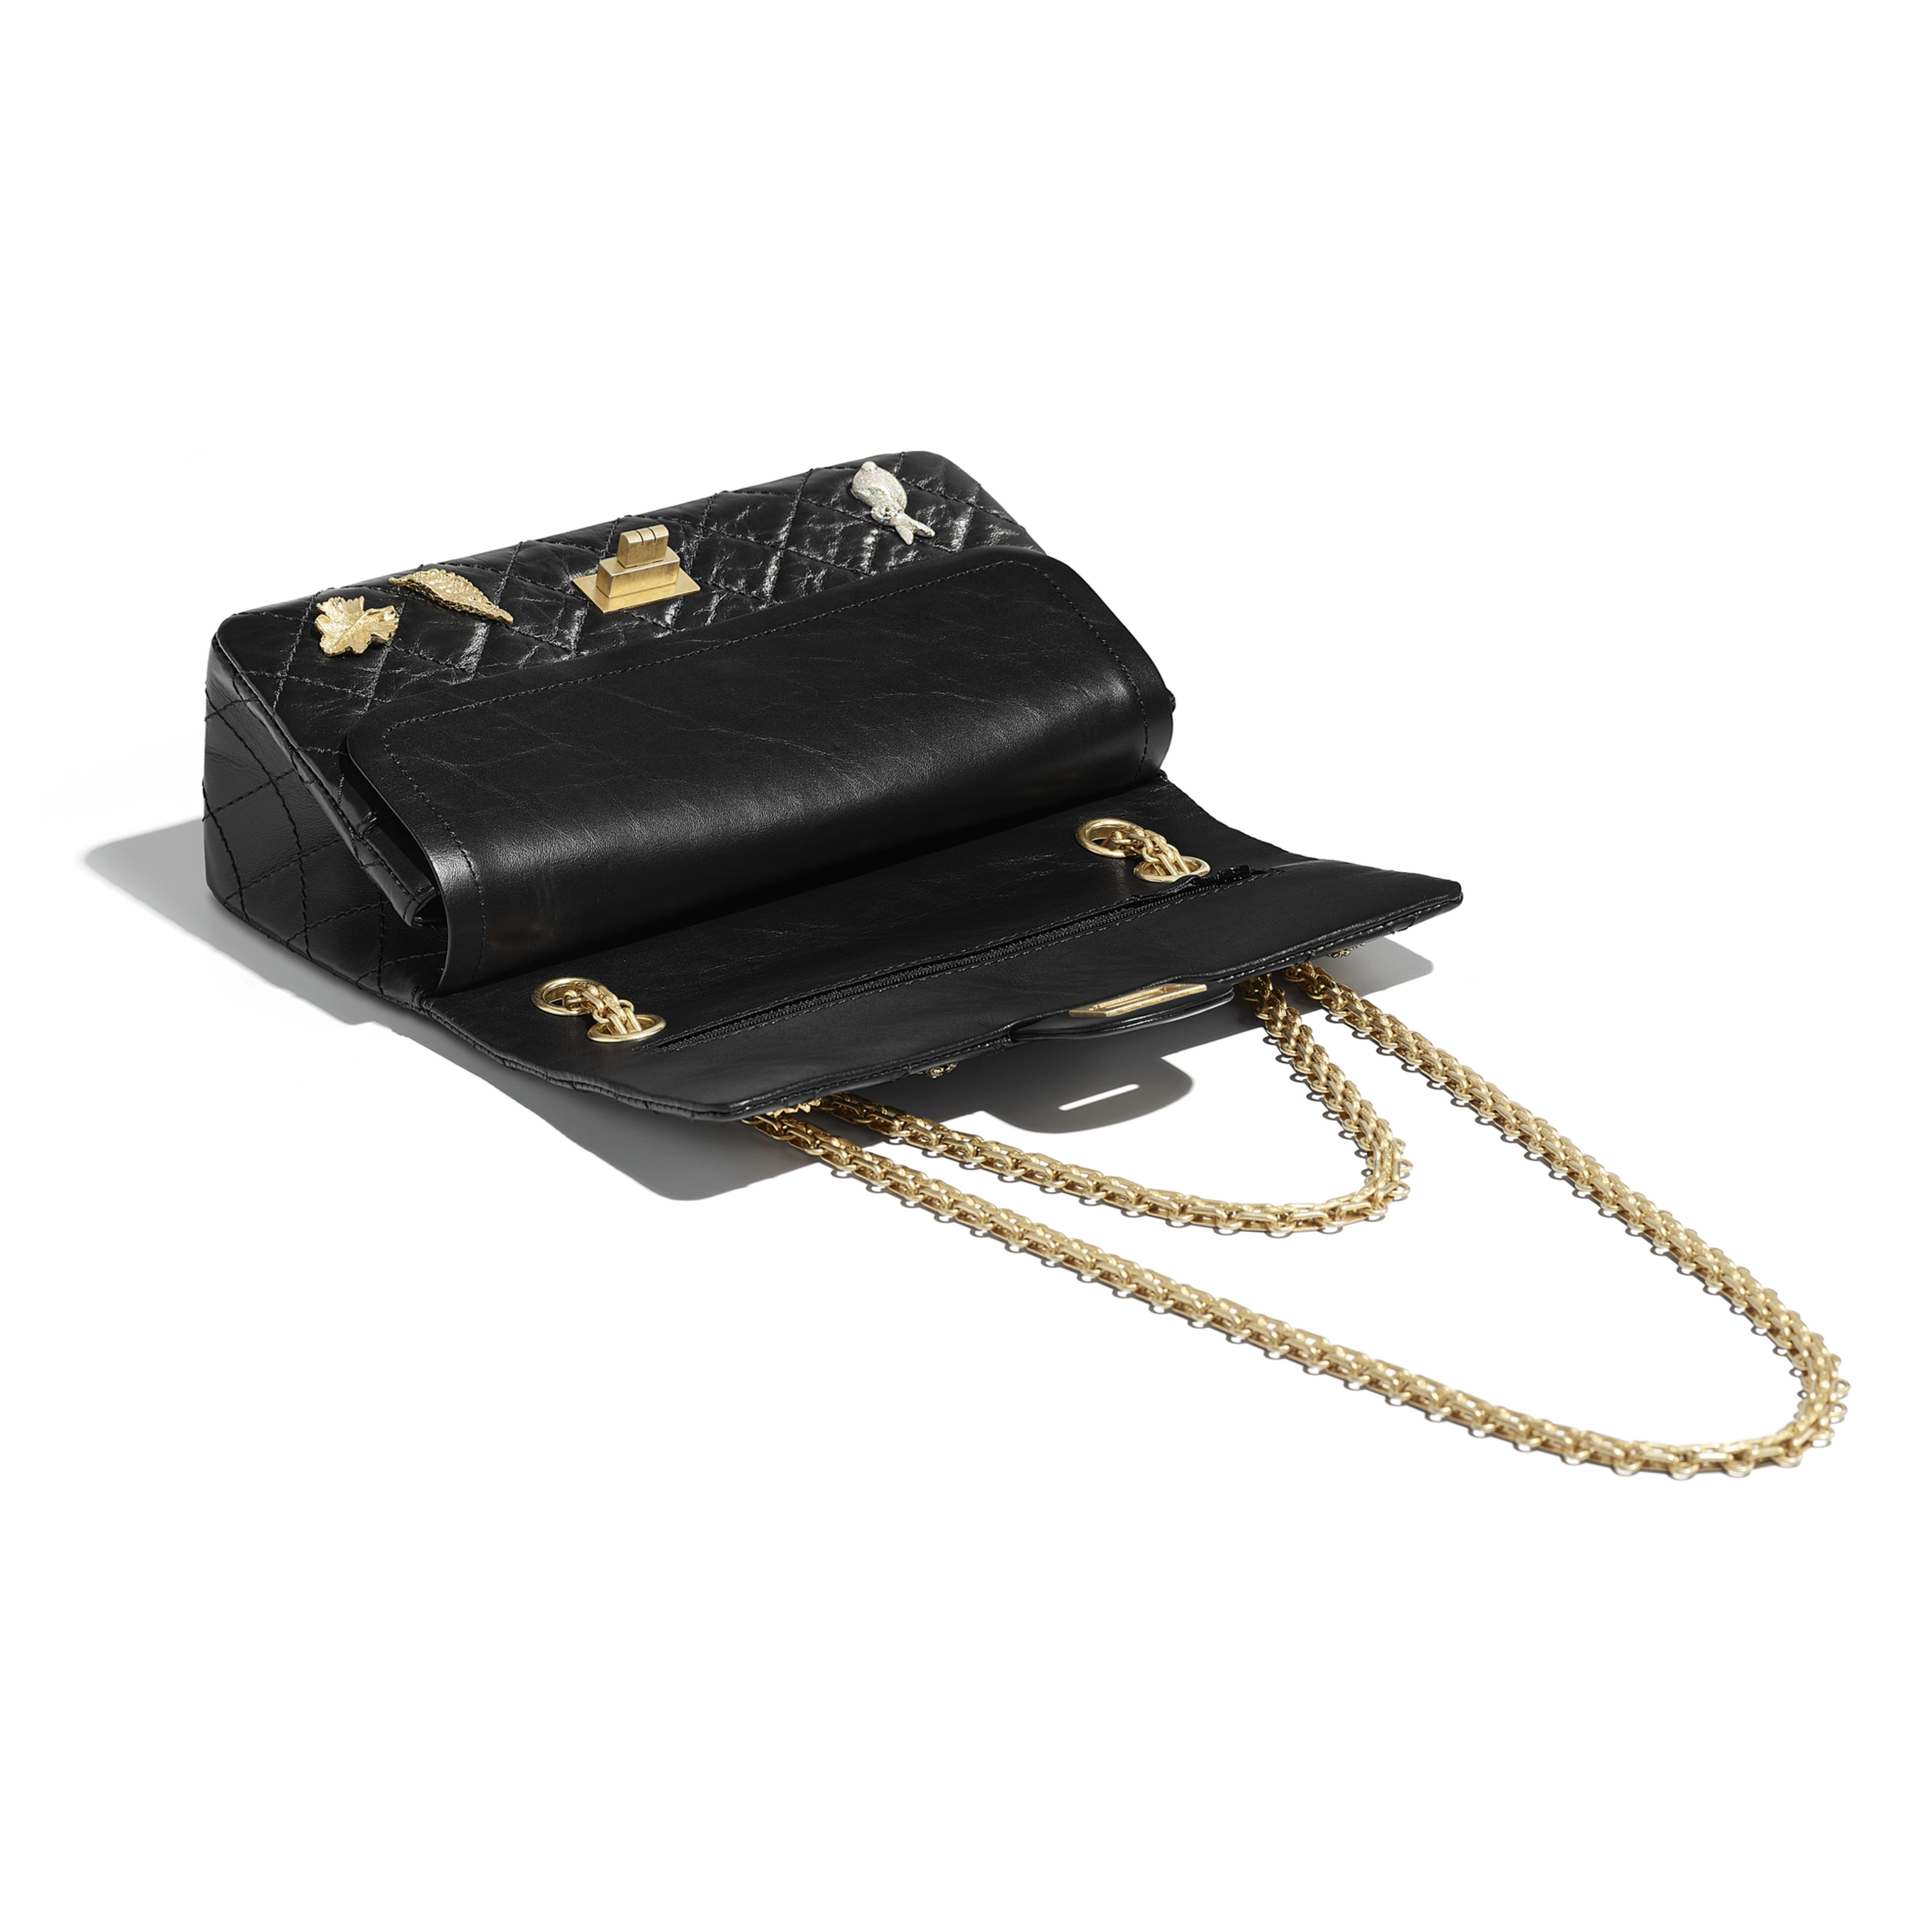 2.55 Handbag - Black - Aged Calfskin, Charms & Gold-Tone Metal - Other view - see full sized version